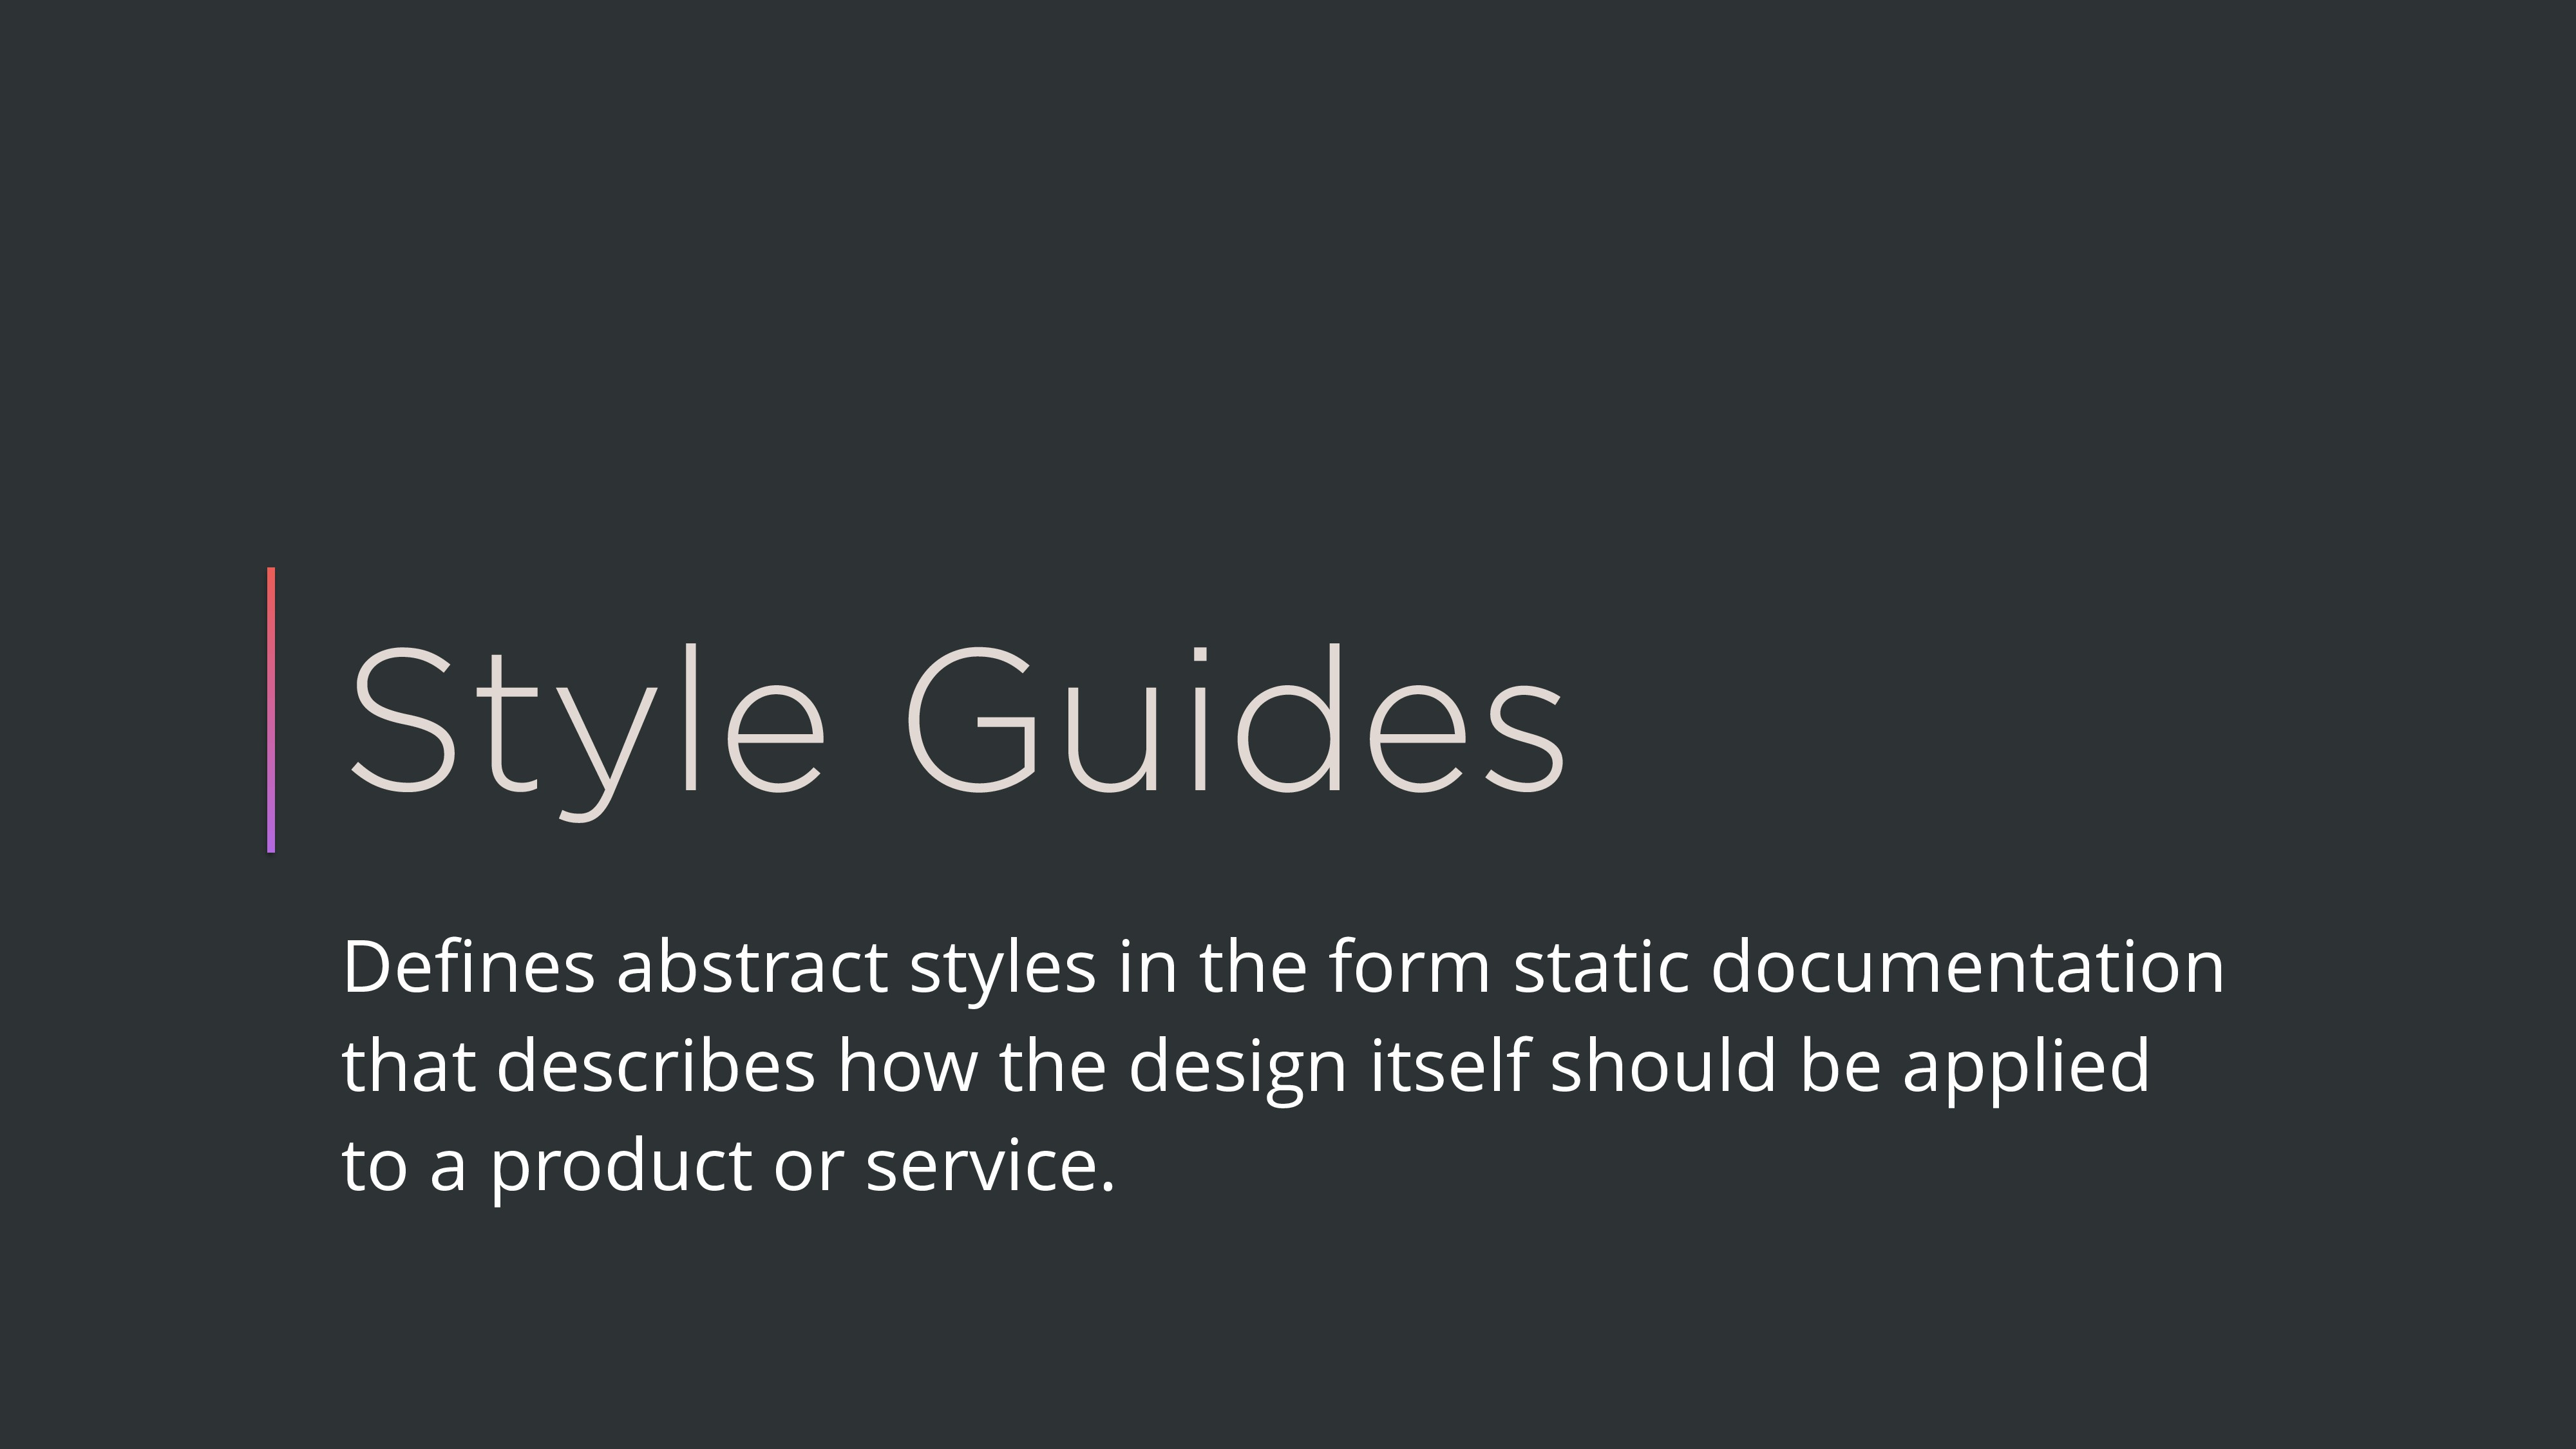 Style Guides Defines abstract styles in the form...